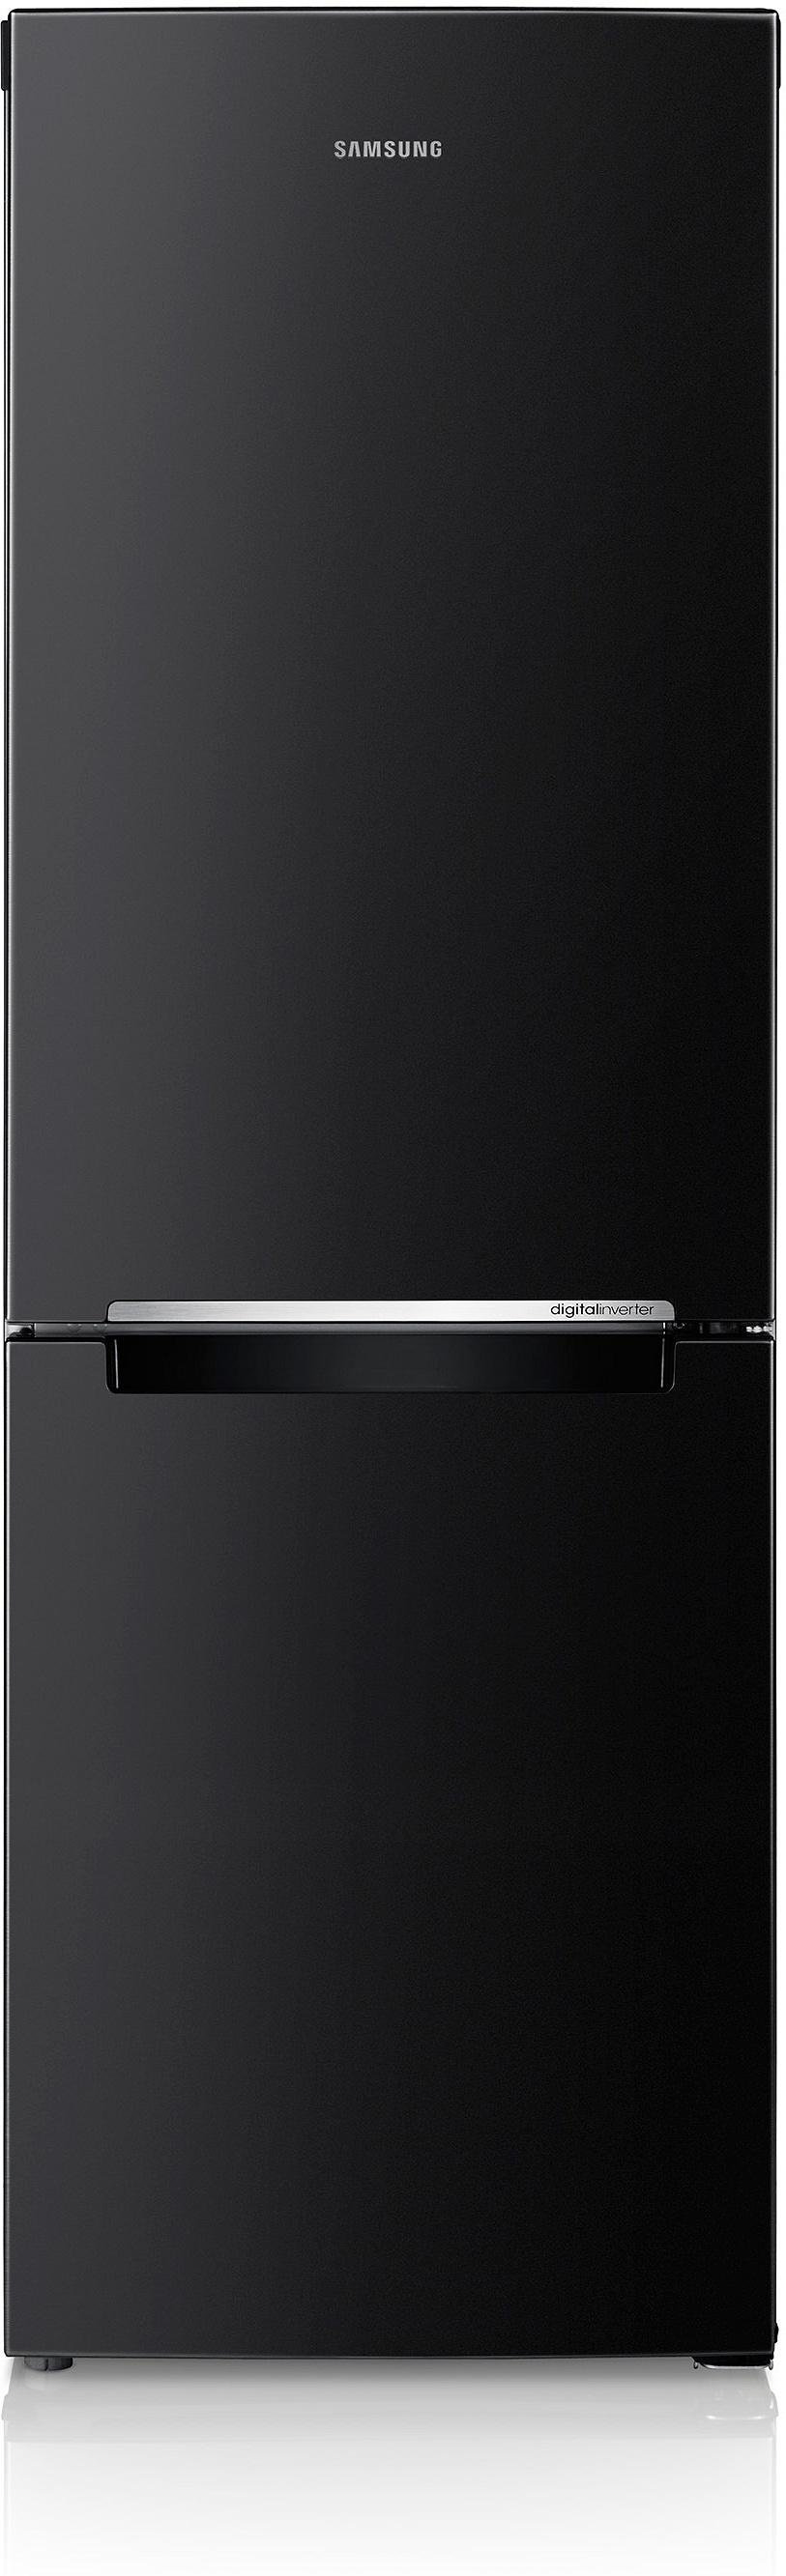 Samsung RB29FSRNDBC Tall Fridge Freezer - Black.